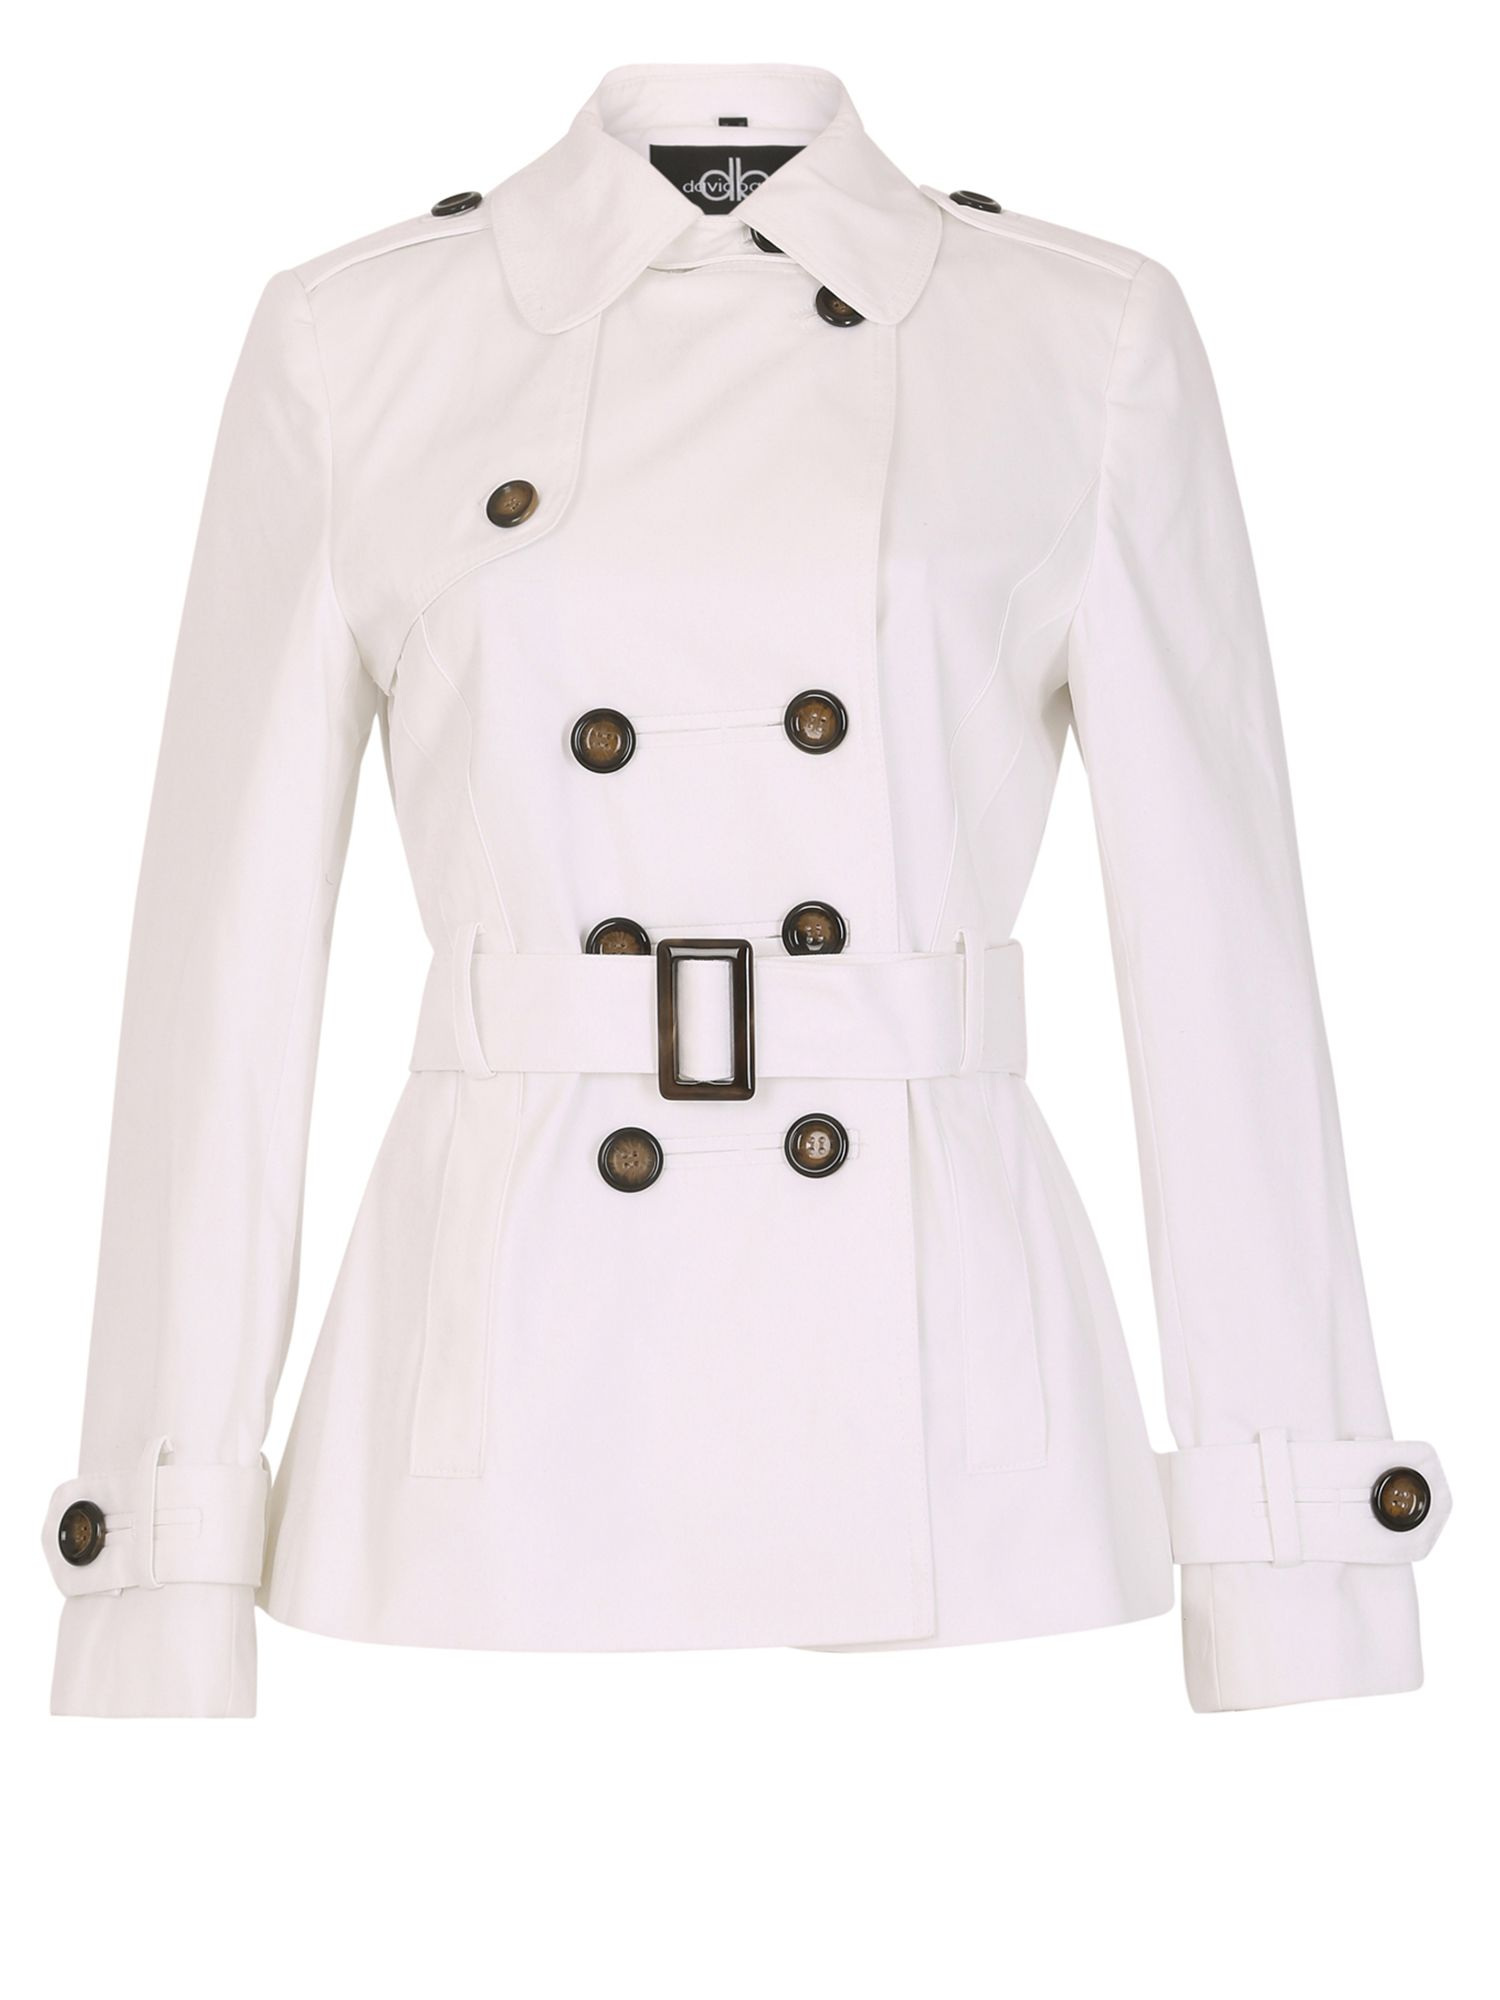 David Barry DB Belted Trench, White